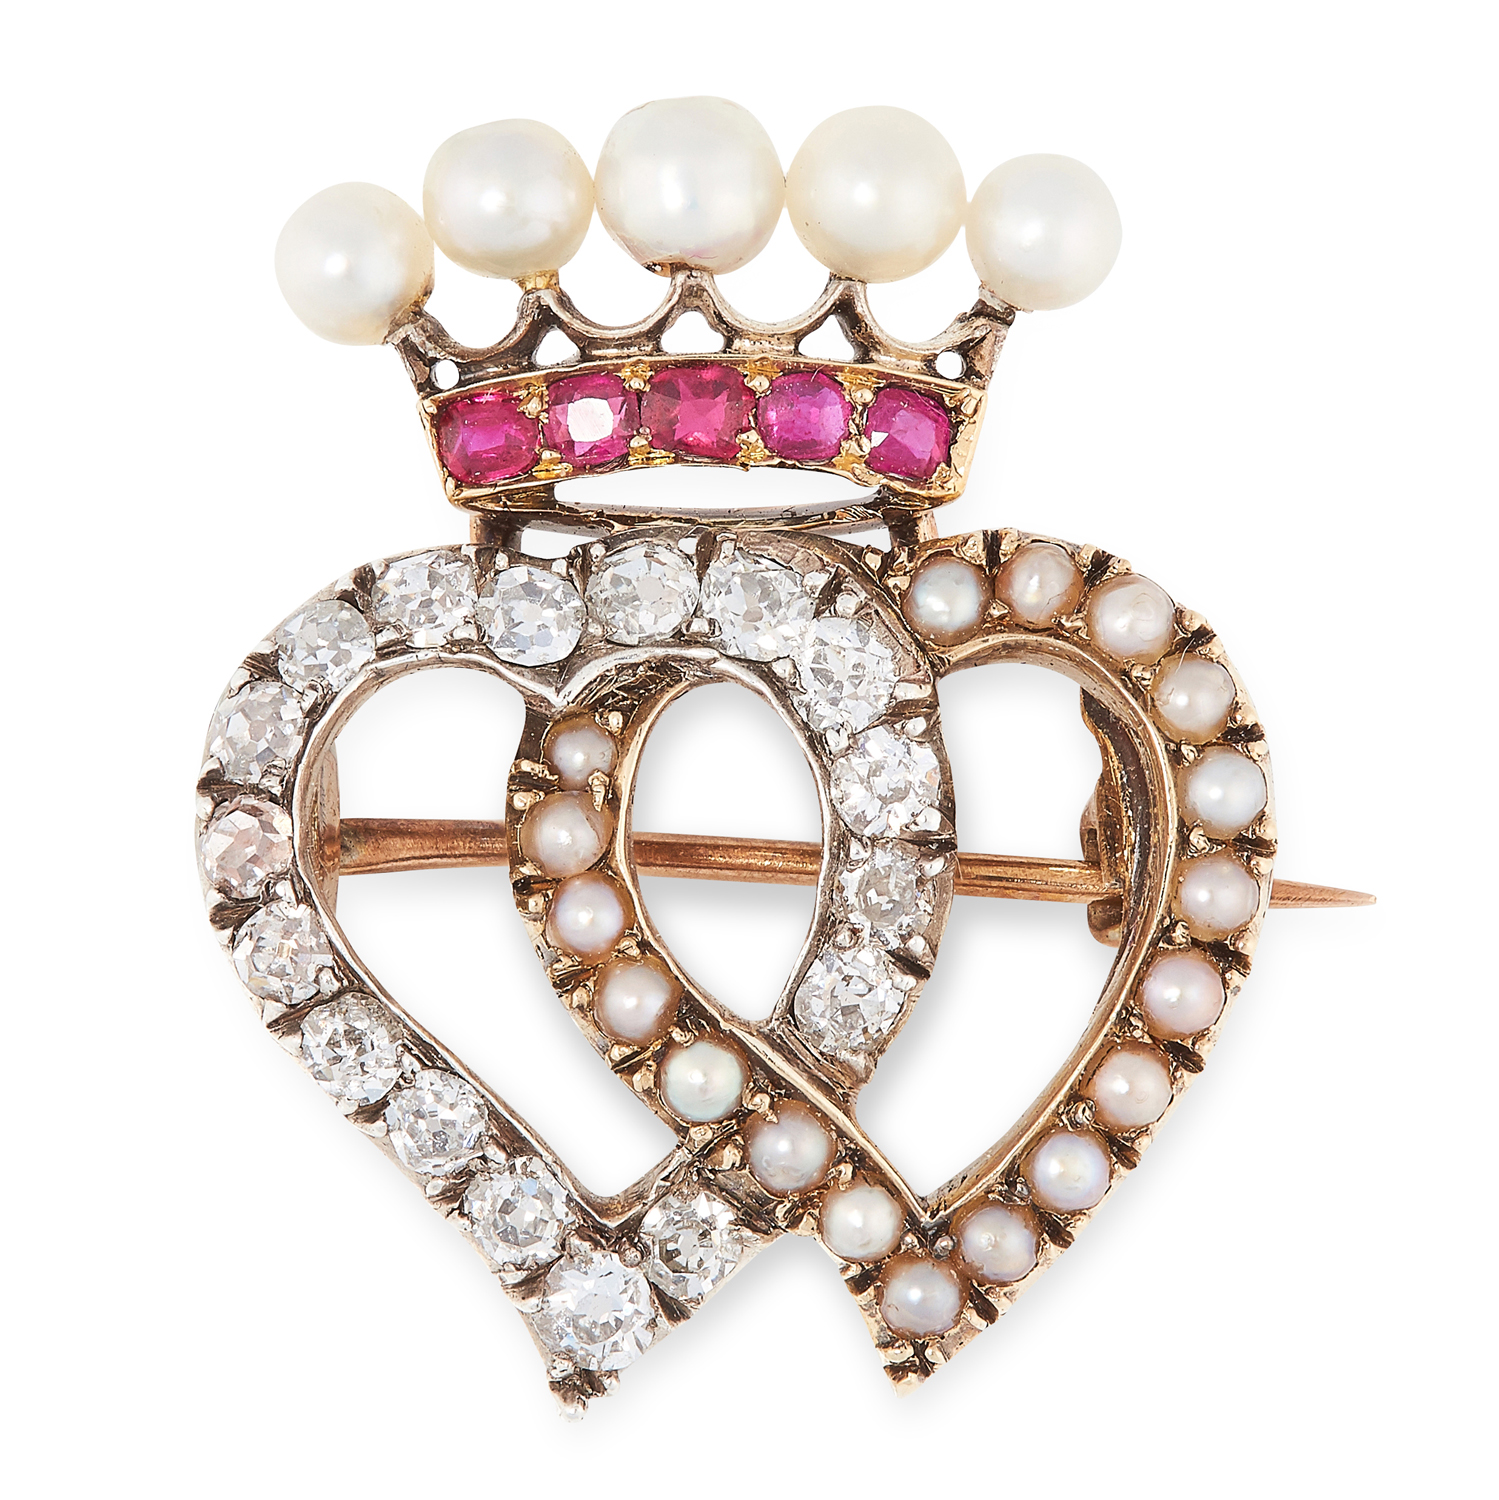 AN ANTIQUE PEARL, RUBY AND DIAMOND SWEETHEART BROOCH, 19TH CENTURY designed as two interlocking